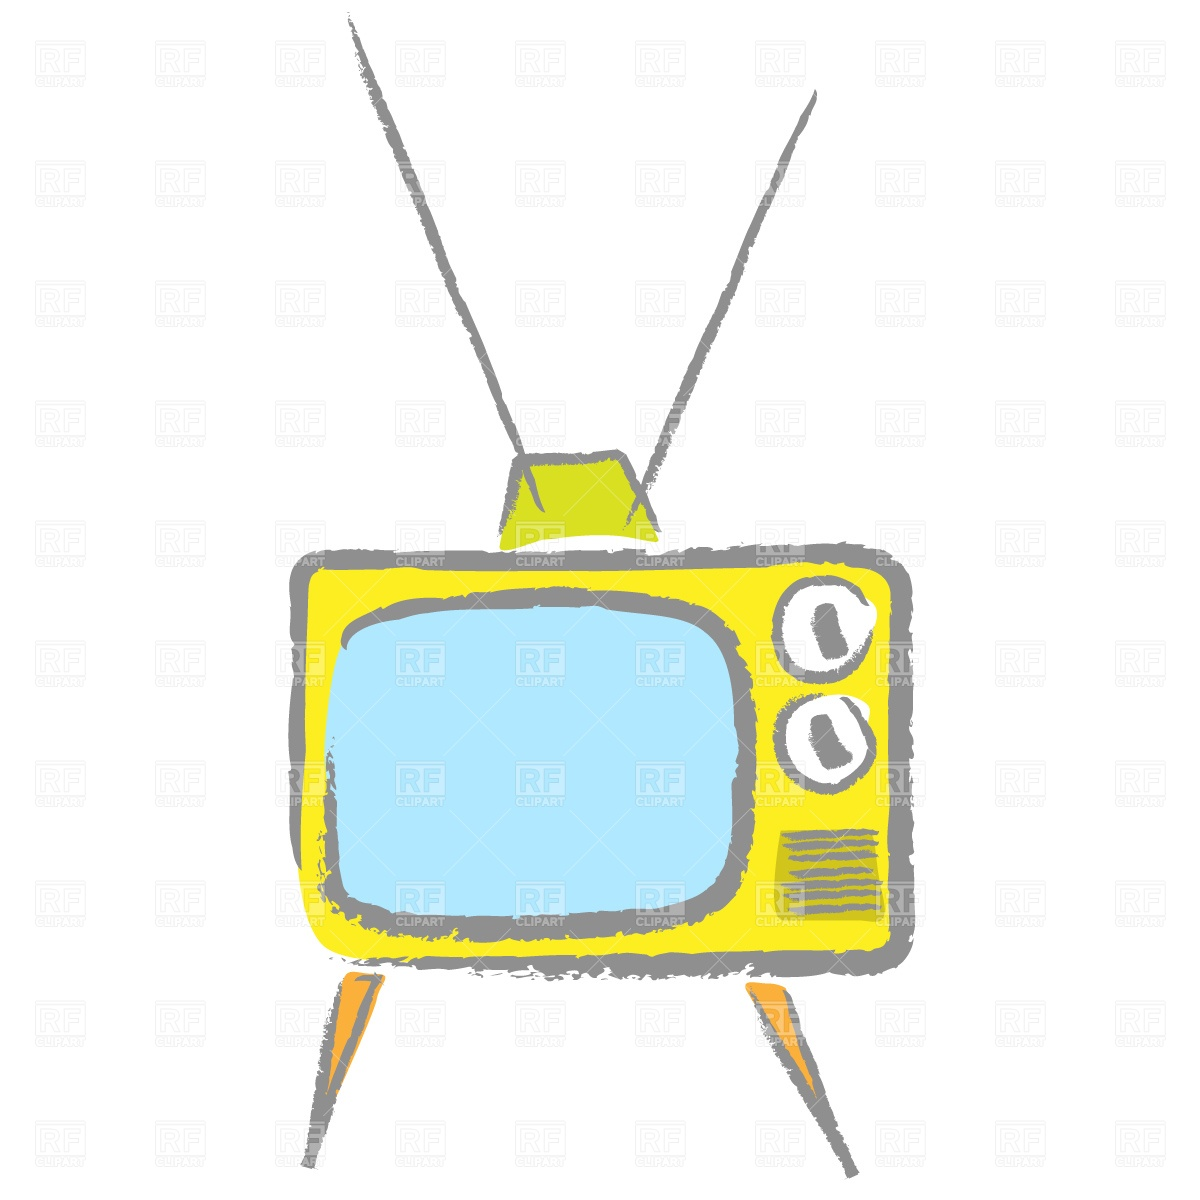 Antenna tv clipart 20 free Cliparts | Download images on